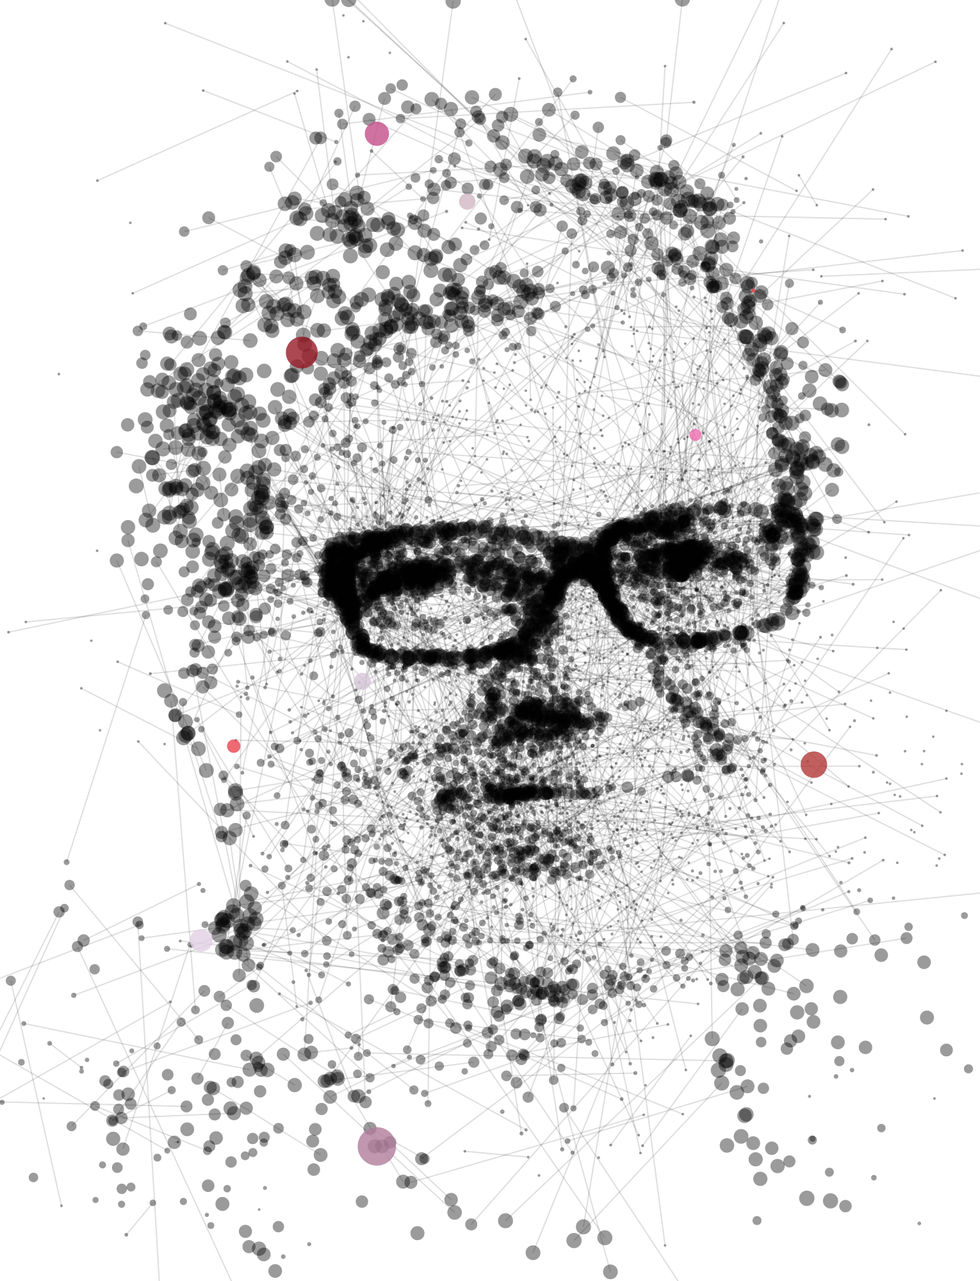 Illustration of Yann LeCun made of dots and lines.